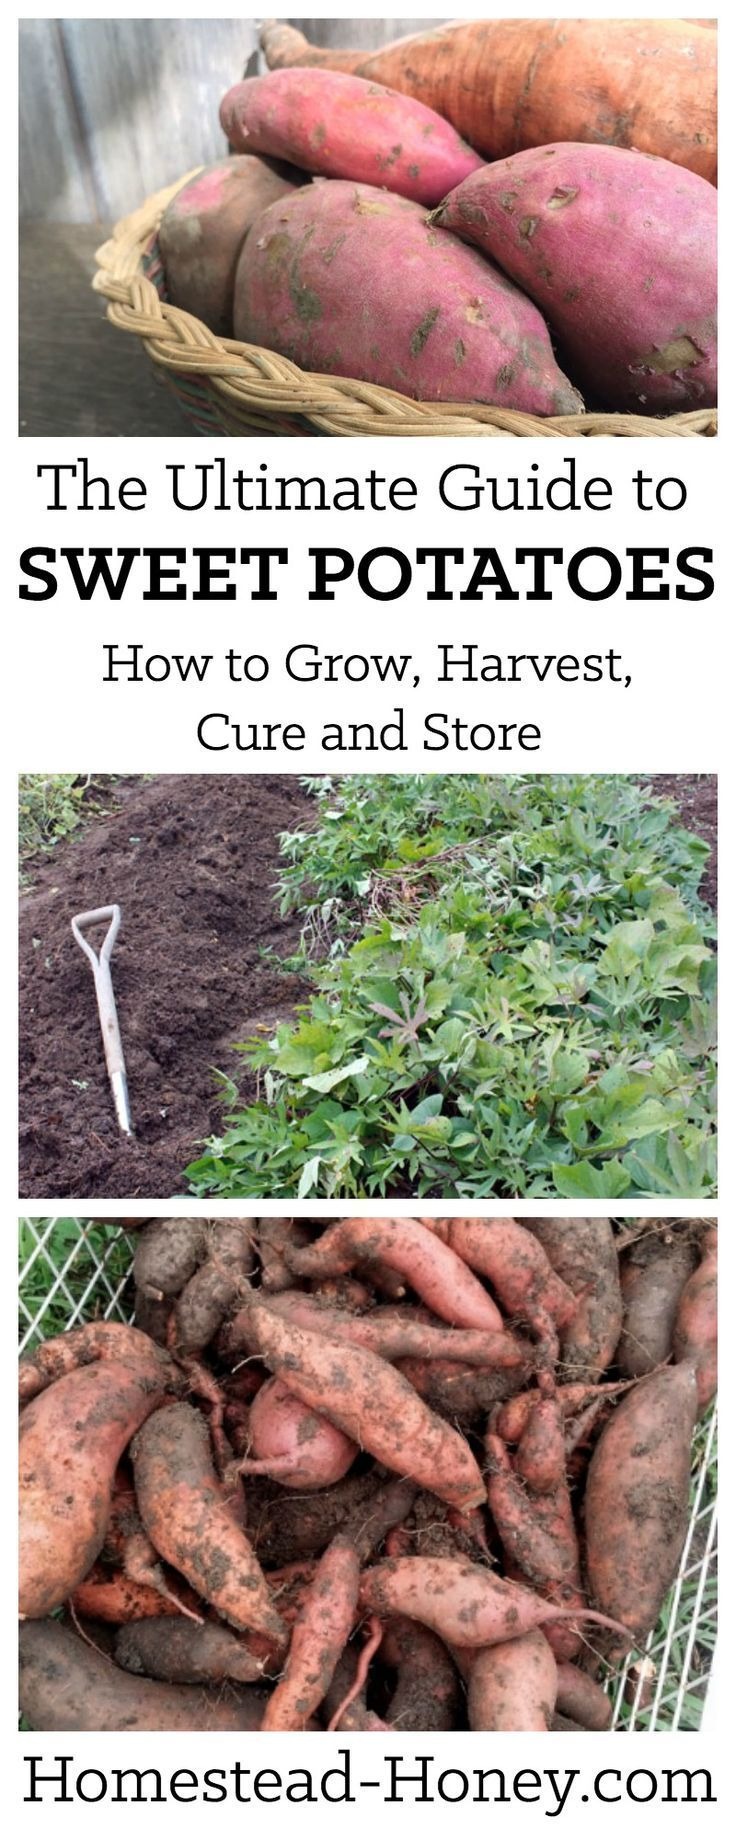 Sweet Potatoes are easy to grow and are a wonderful storage crop. Not to mention that homegrown sweet potatoes are out-of-this-world delicious! This ultimate guide will show you how to grow, harvest, cure, and store sweet potatoes for winter eating!